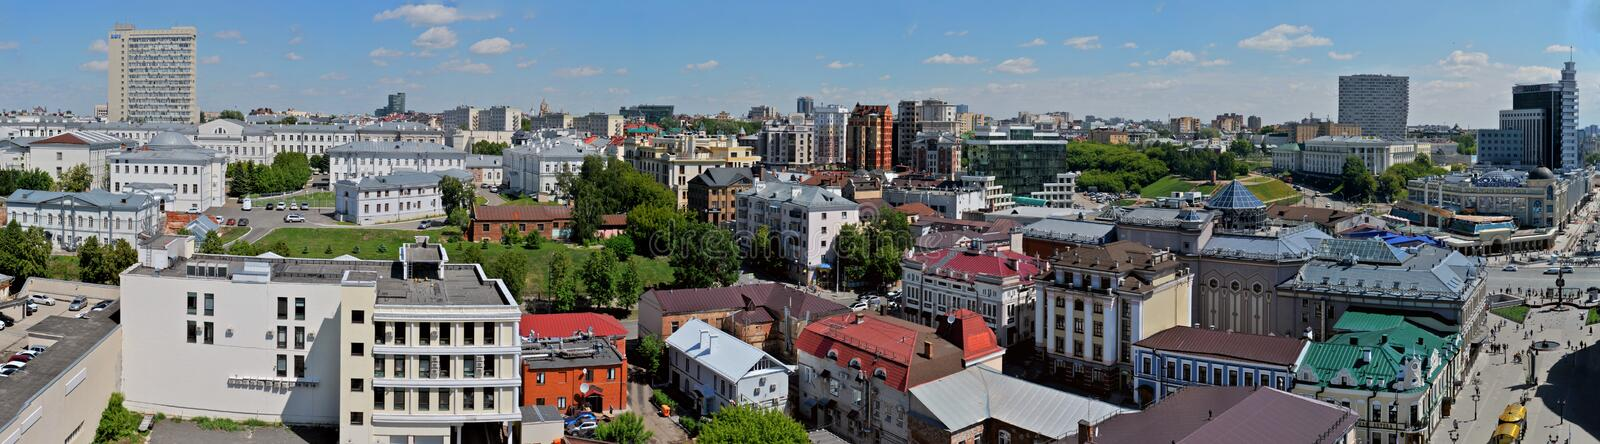 Kazan, Tatarstan, Russia - May 28, 2019: Morning panorama of Kazan from the height of the Epiphany bell tower. royalty free stock photos